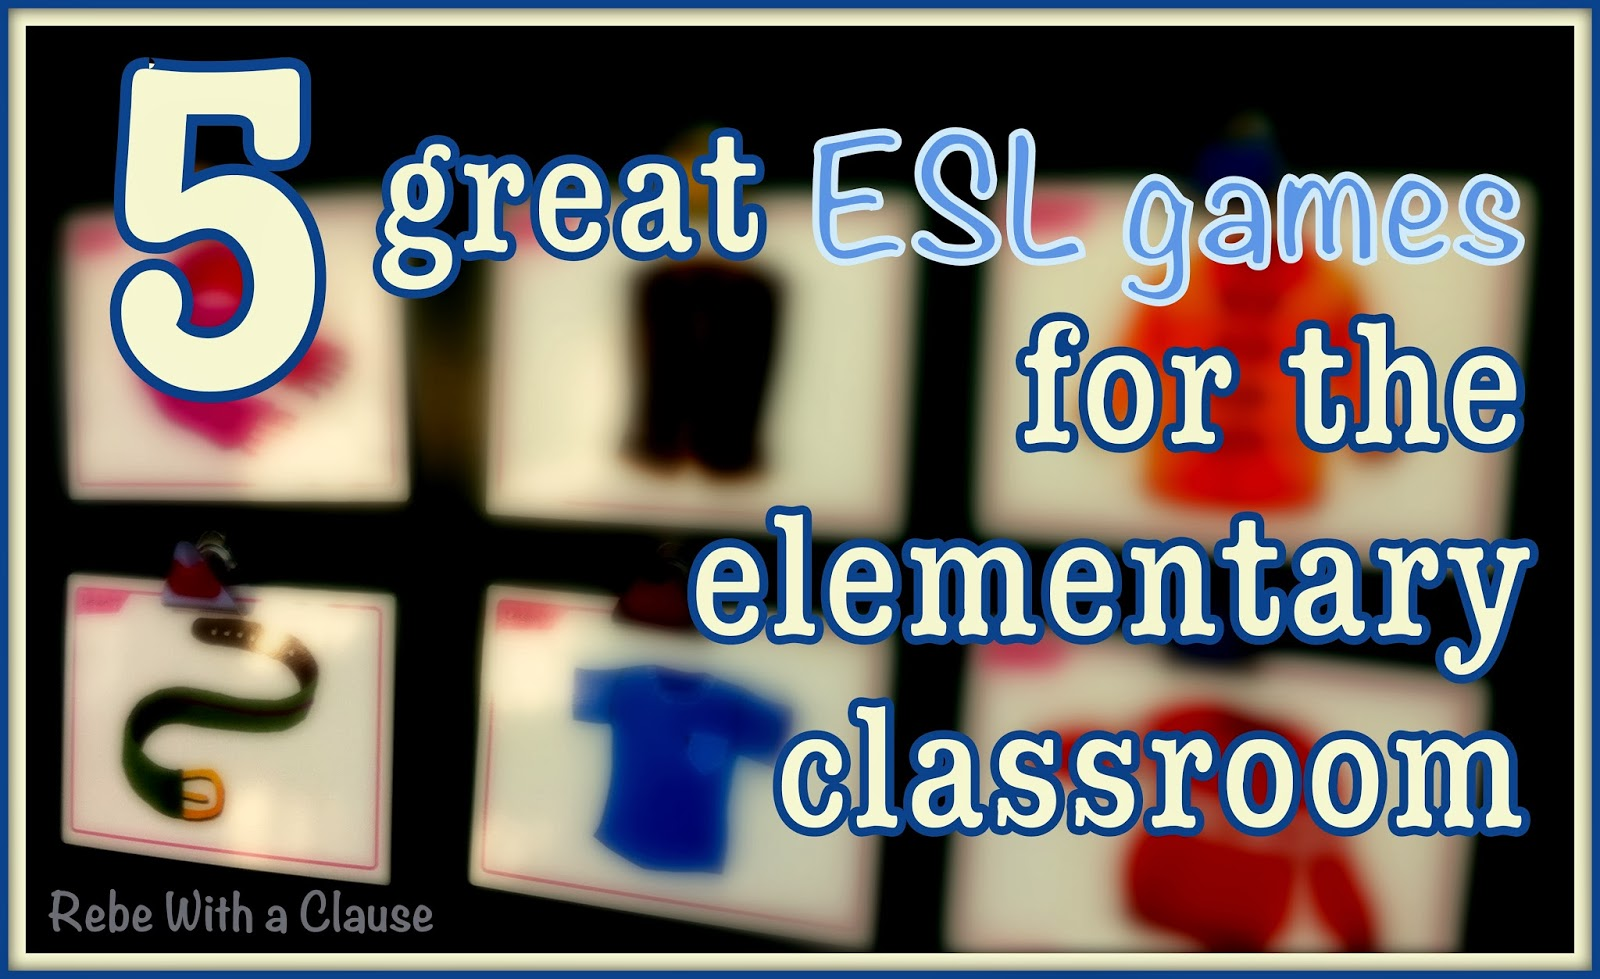 Esl Games 5 Great Esl Games For The Elementary Classroom Rebe With A Clause